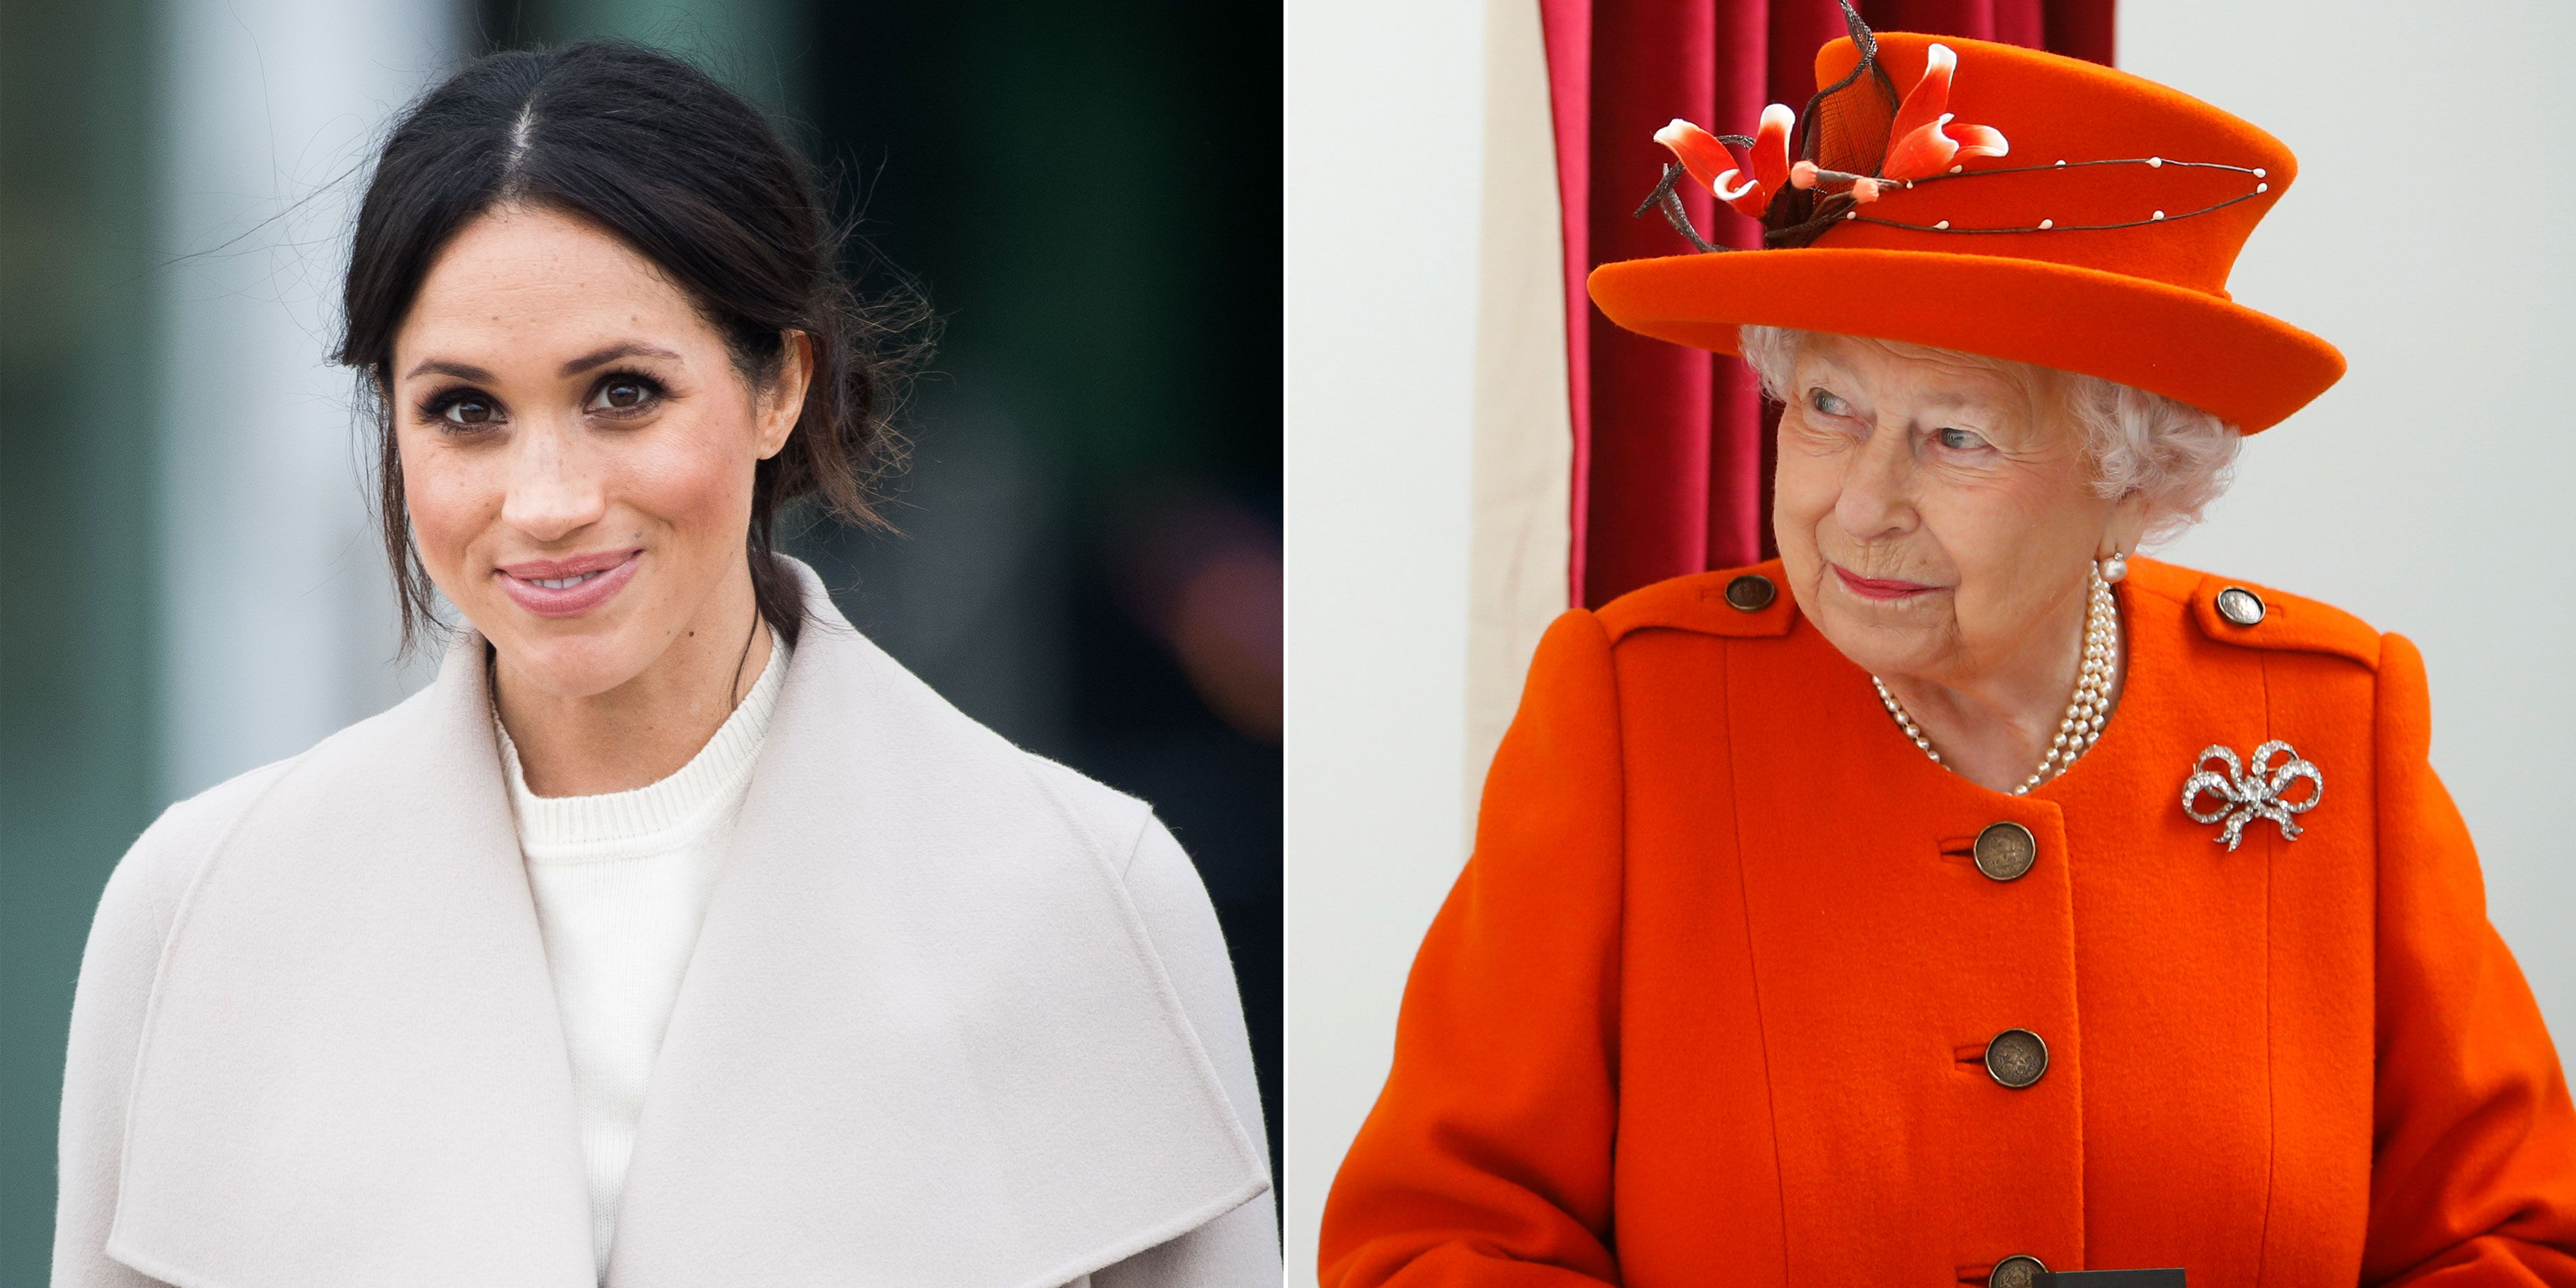 What Really Happened When Meghan Markle Had Tea With The Queen